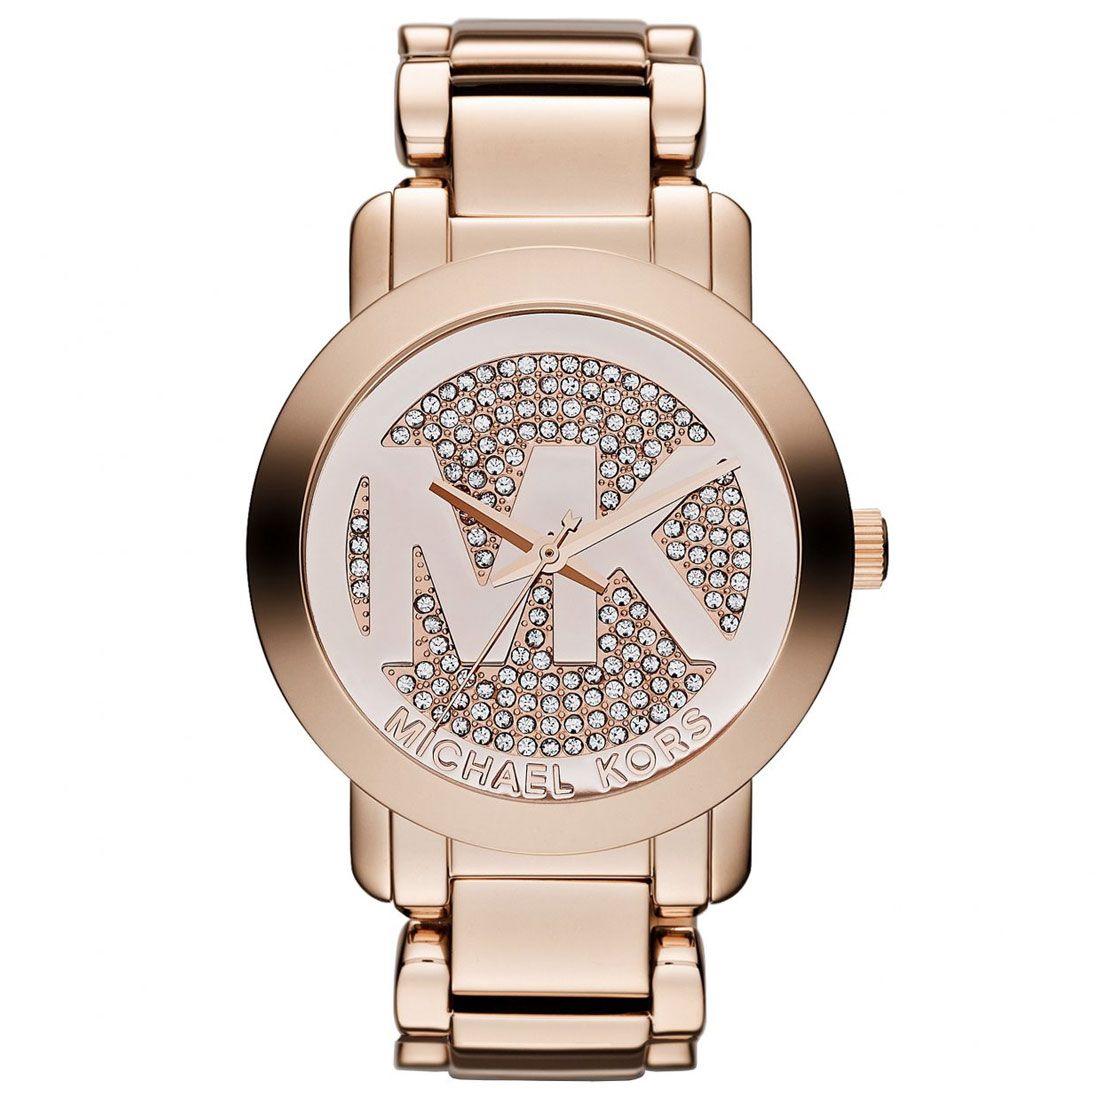 20b025885 Relógio Michael Kors - MK3463 - Rose - By Viana Shop